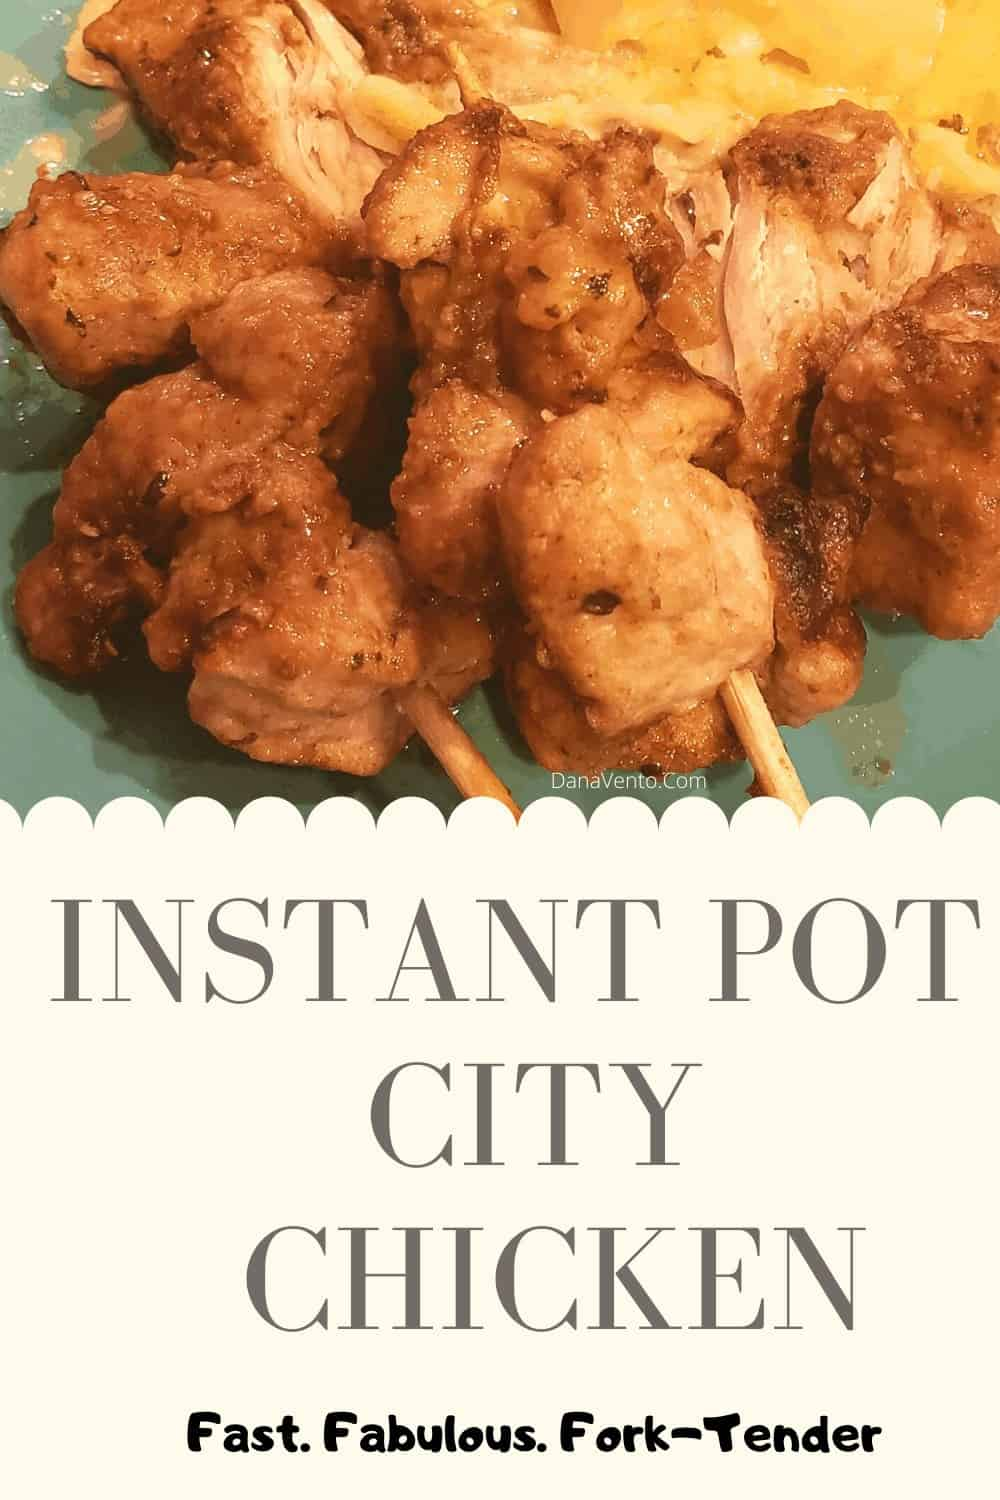 Instant Pot City Chicken cooked on plate on skewers falling off skewer